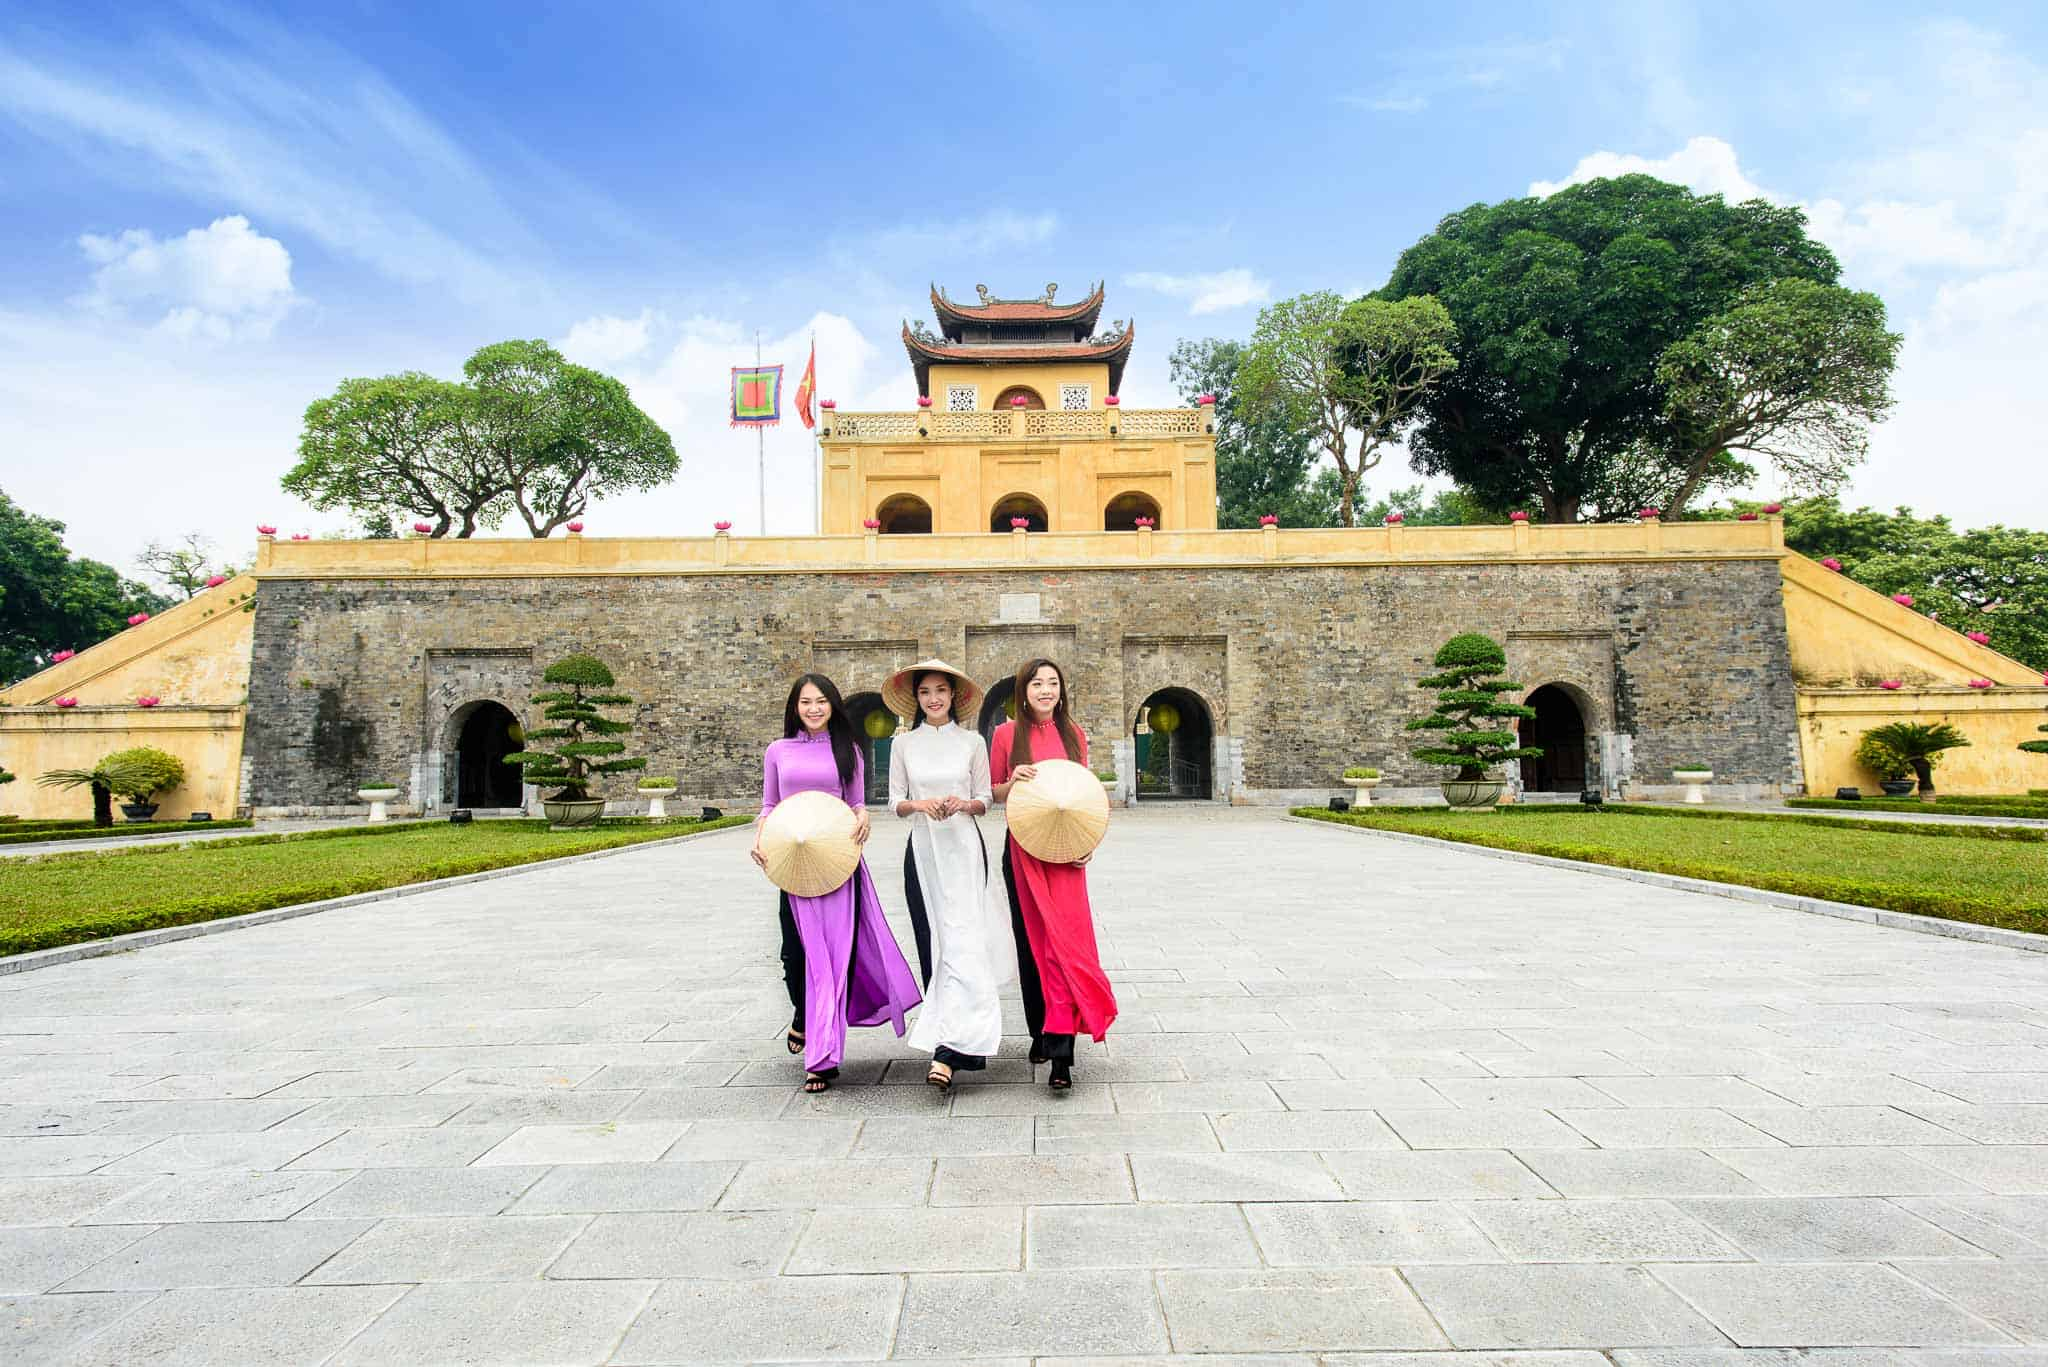 Cultural values of imperial citdel of Thang Long